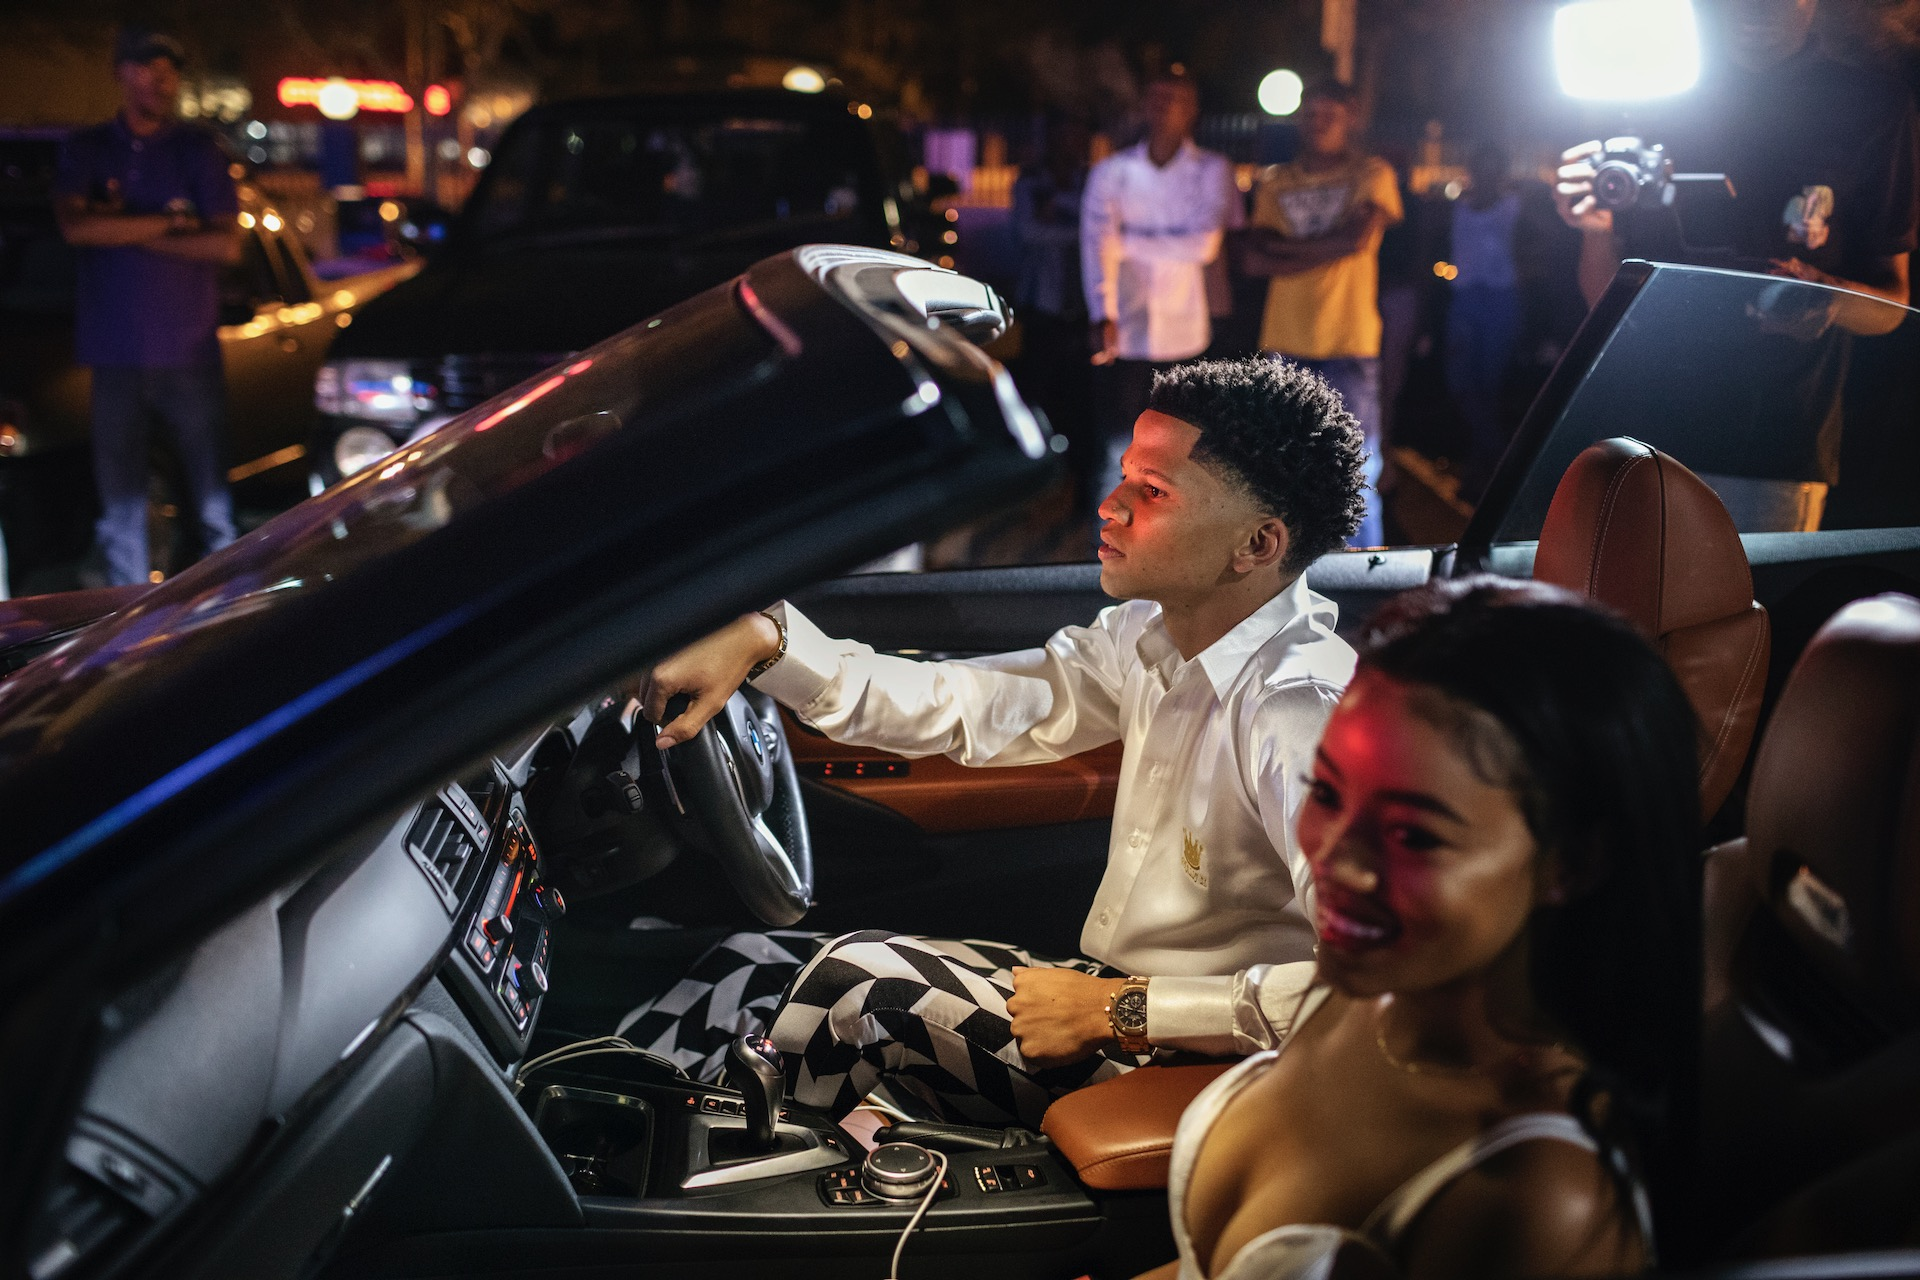 3.  Jason Noah (21) arrives at a night club in Pretoria to celebrate his 21st birthday. Jason is a foreign exchange trader, an activity that has made him millions of rands. He grew up in a middle-class family. (2018)